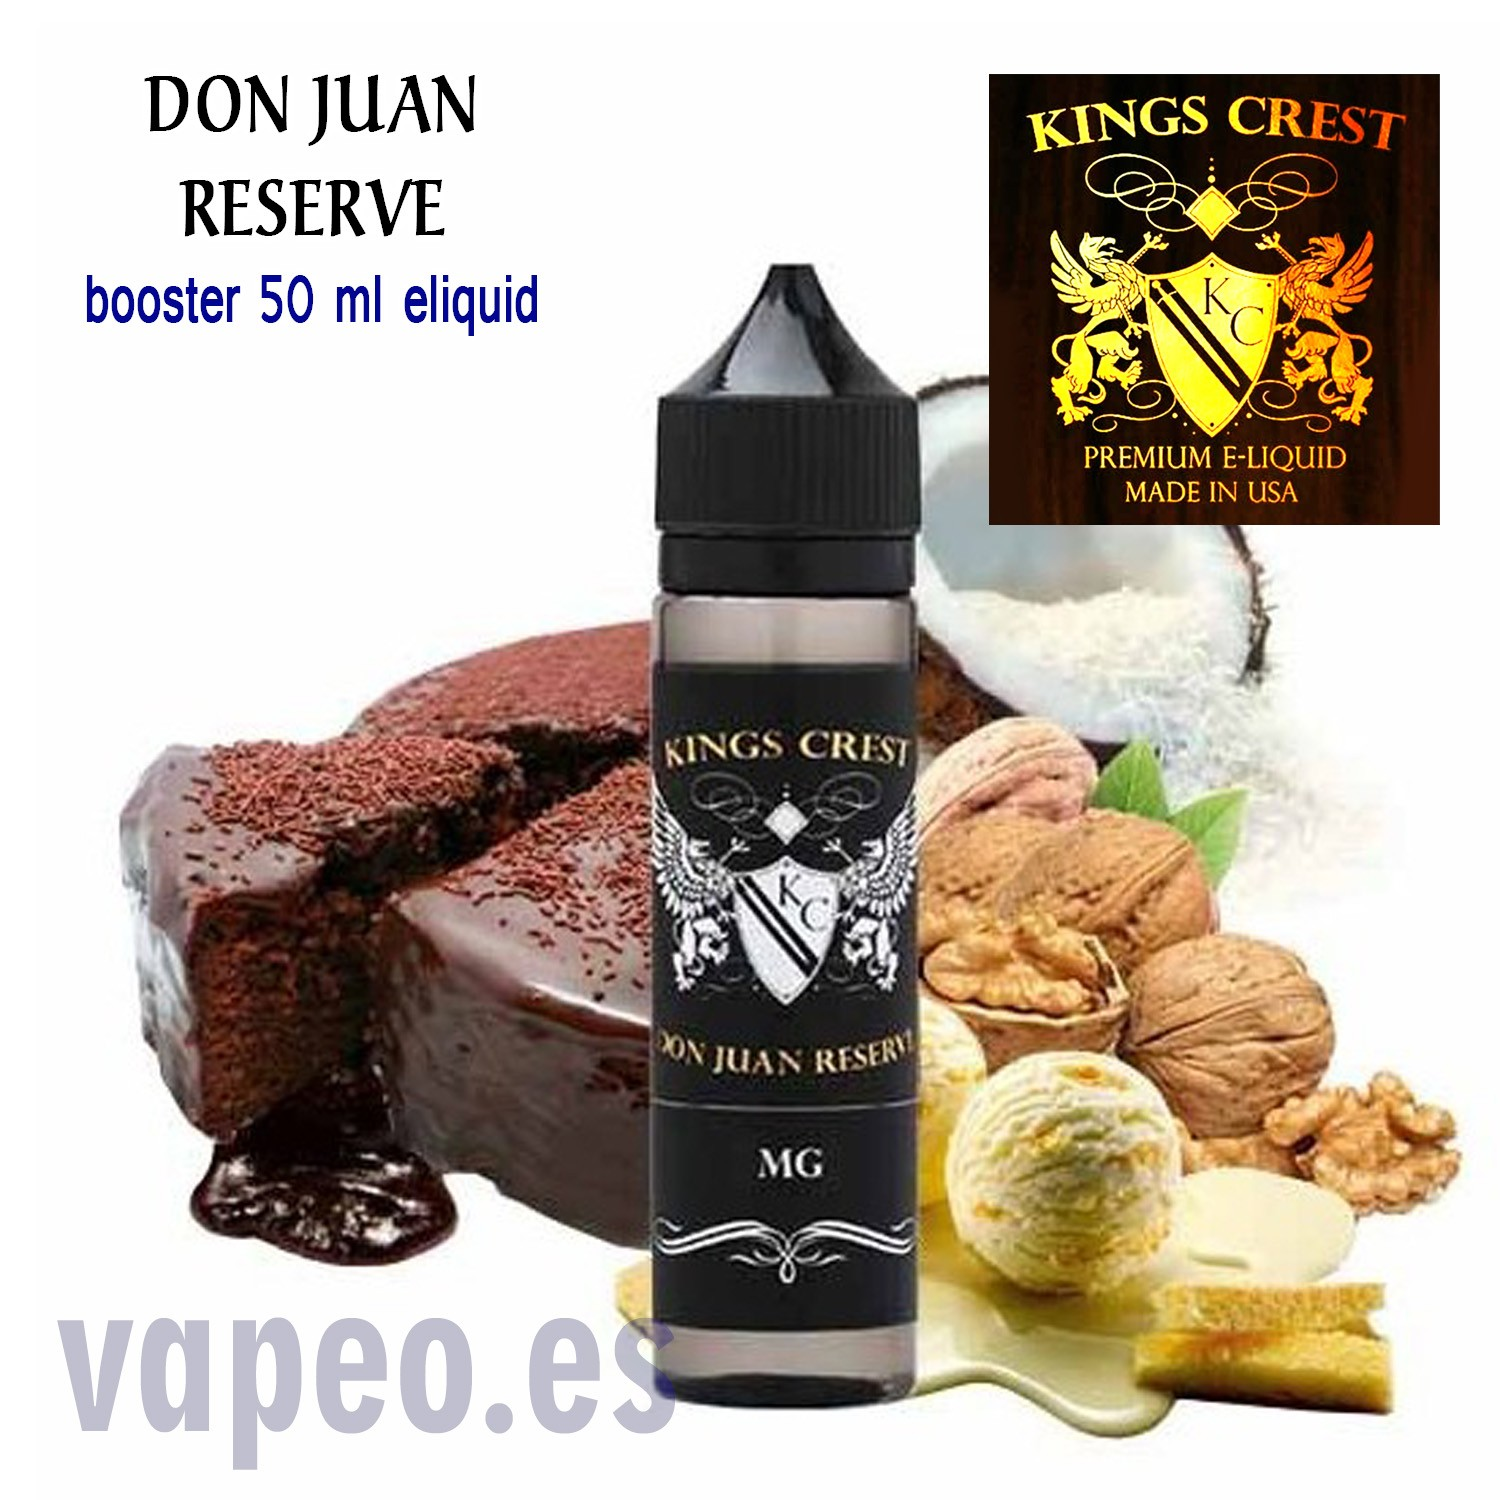 DON JUAN RESERVE KING CREST